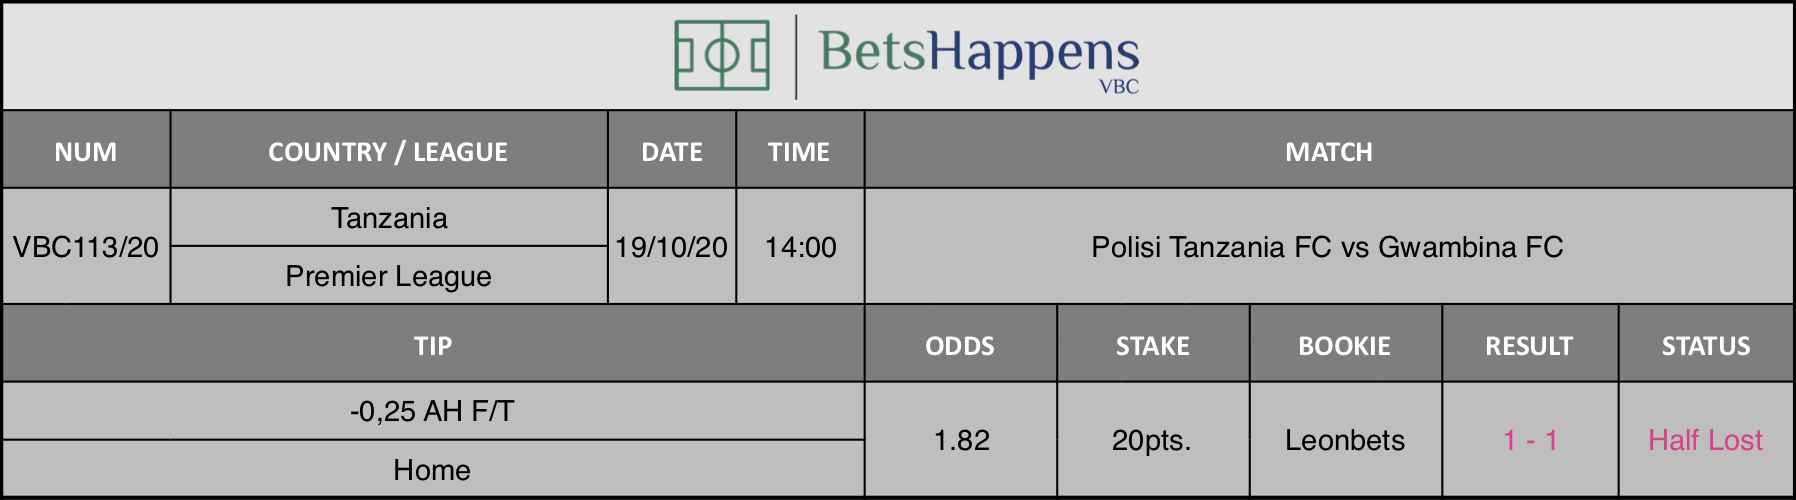 Results of our advice for the Polisi Tanzania FC vs Gwambina FC match in which -0.25 AH F / T Home is recommended.